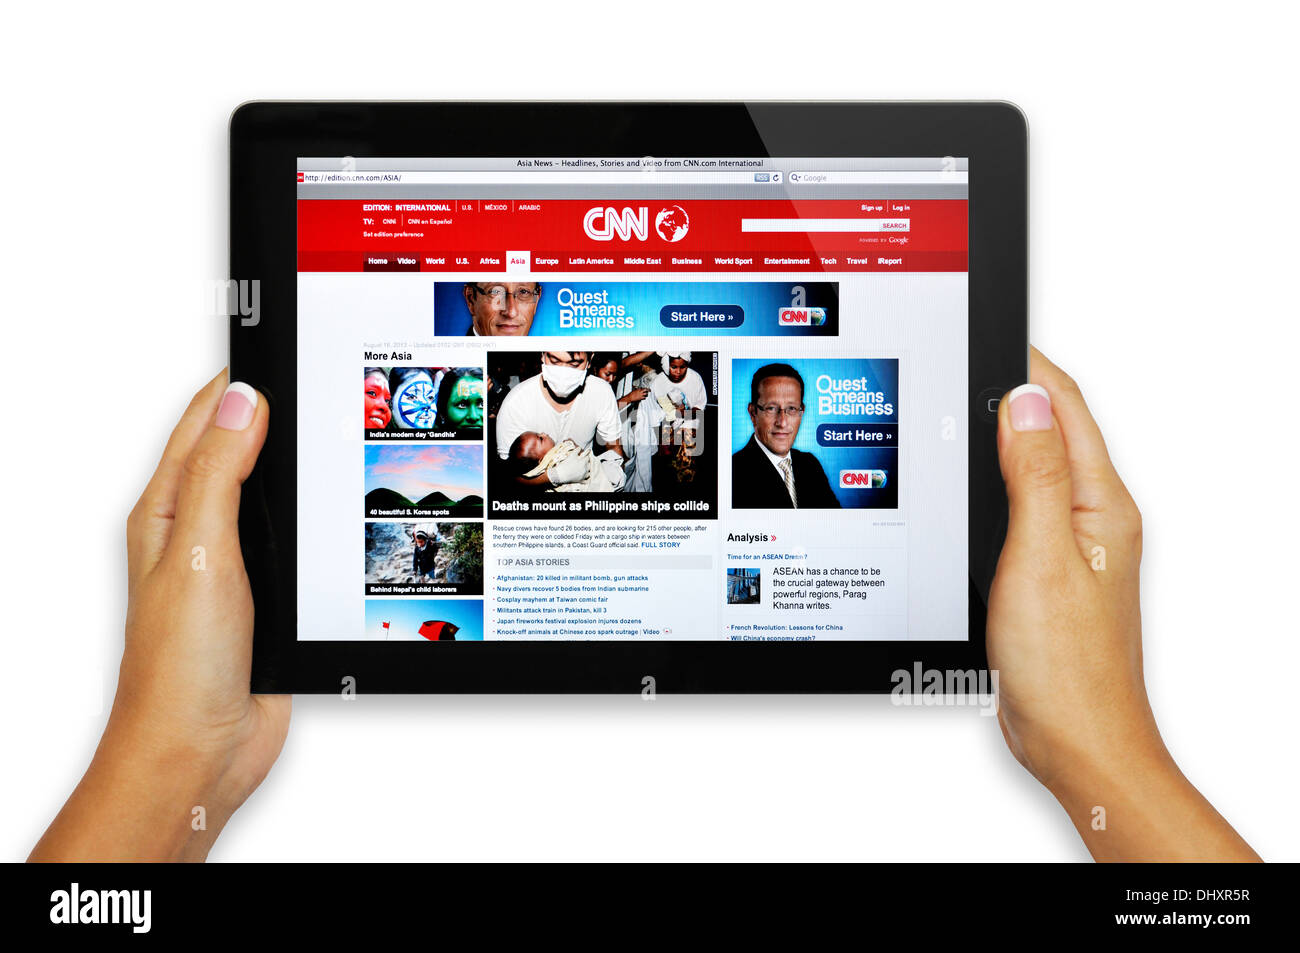 Asia CNN website on iPad screen Stock Photo: 62669203 - Alamy